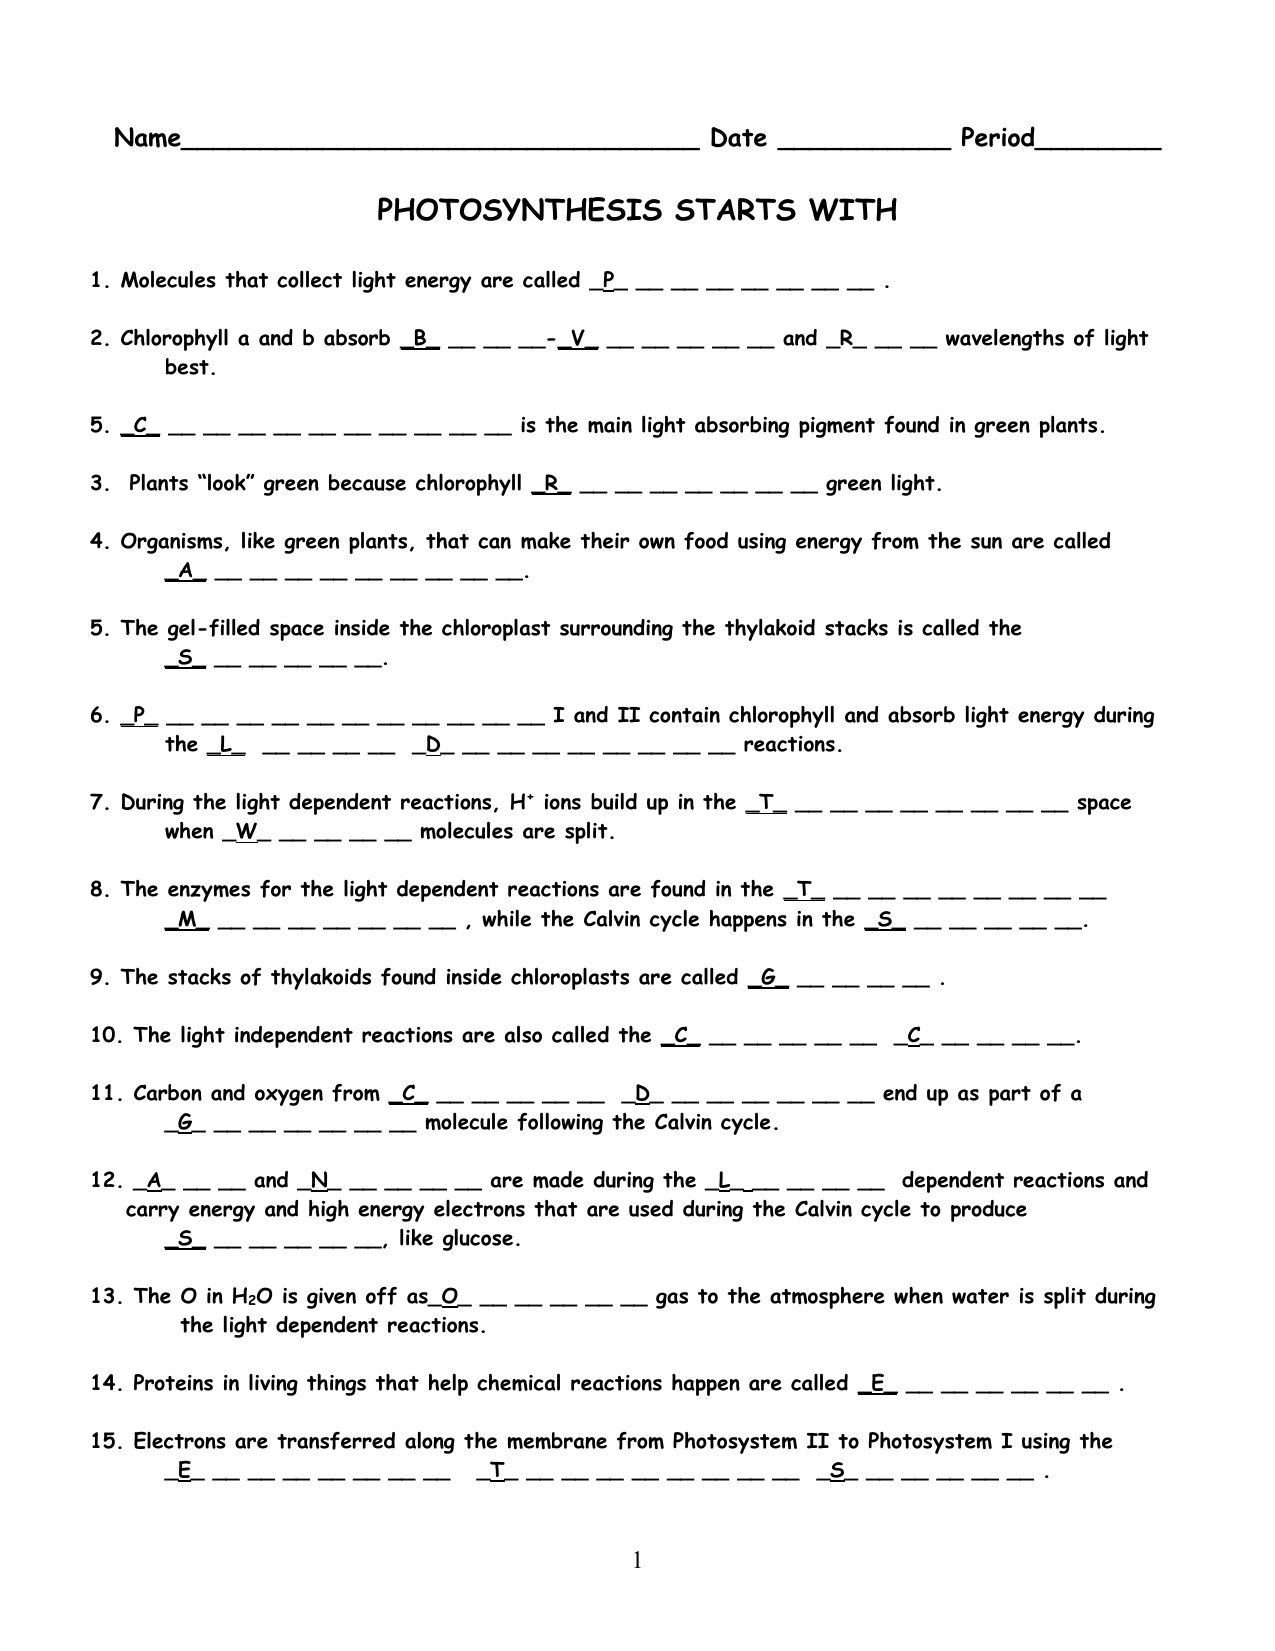 worksheet Classifying Chemical Reactions Worksheet Answers photosynthesis starts with name date period